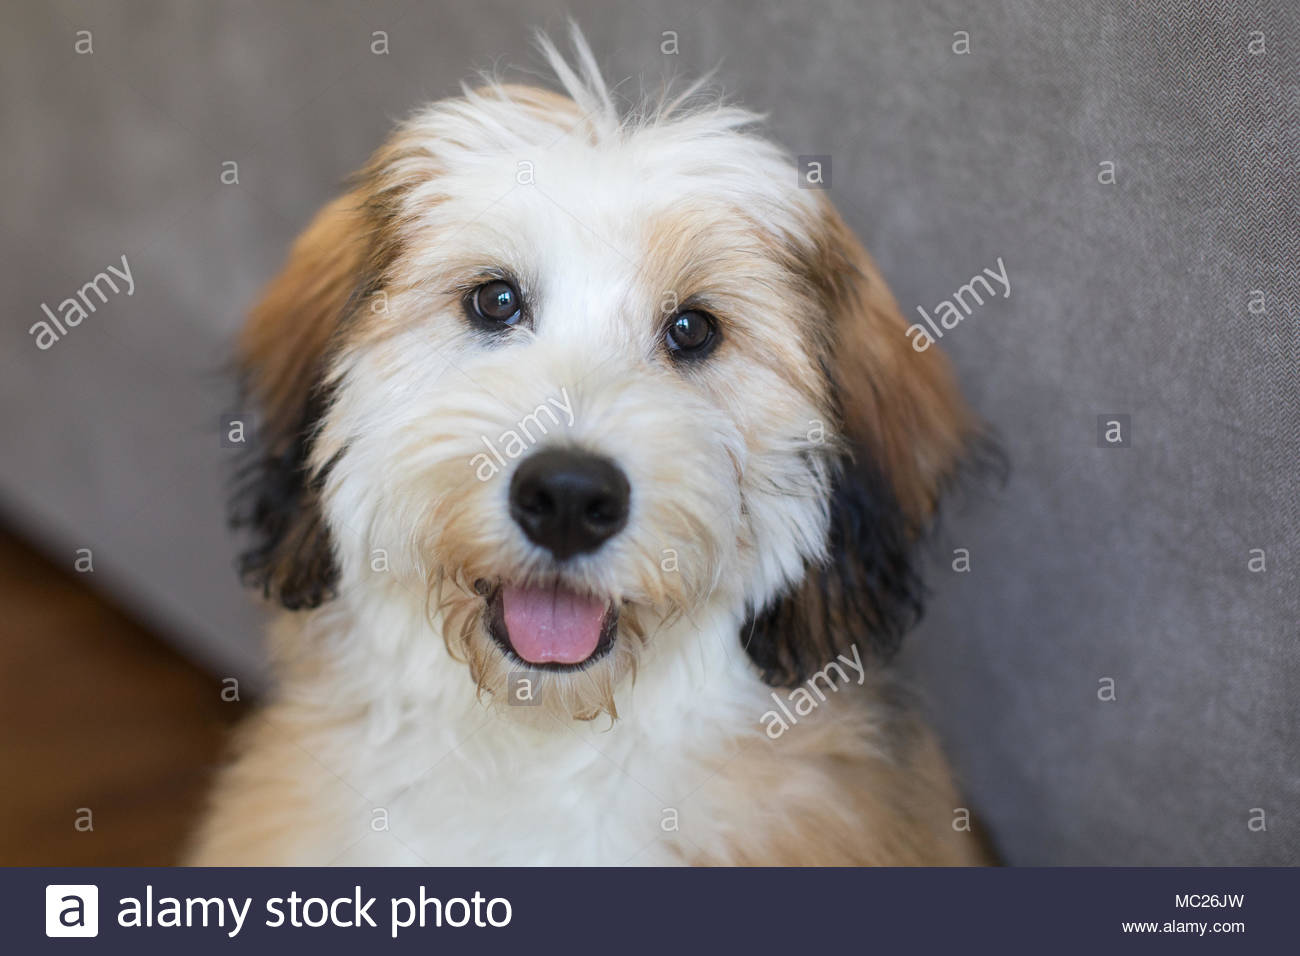 Close-up of happy smiling Bernedoodle puppy with tongue out - Stock Image